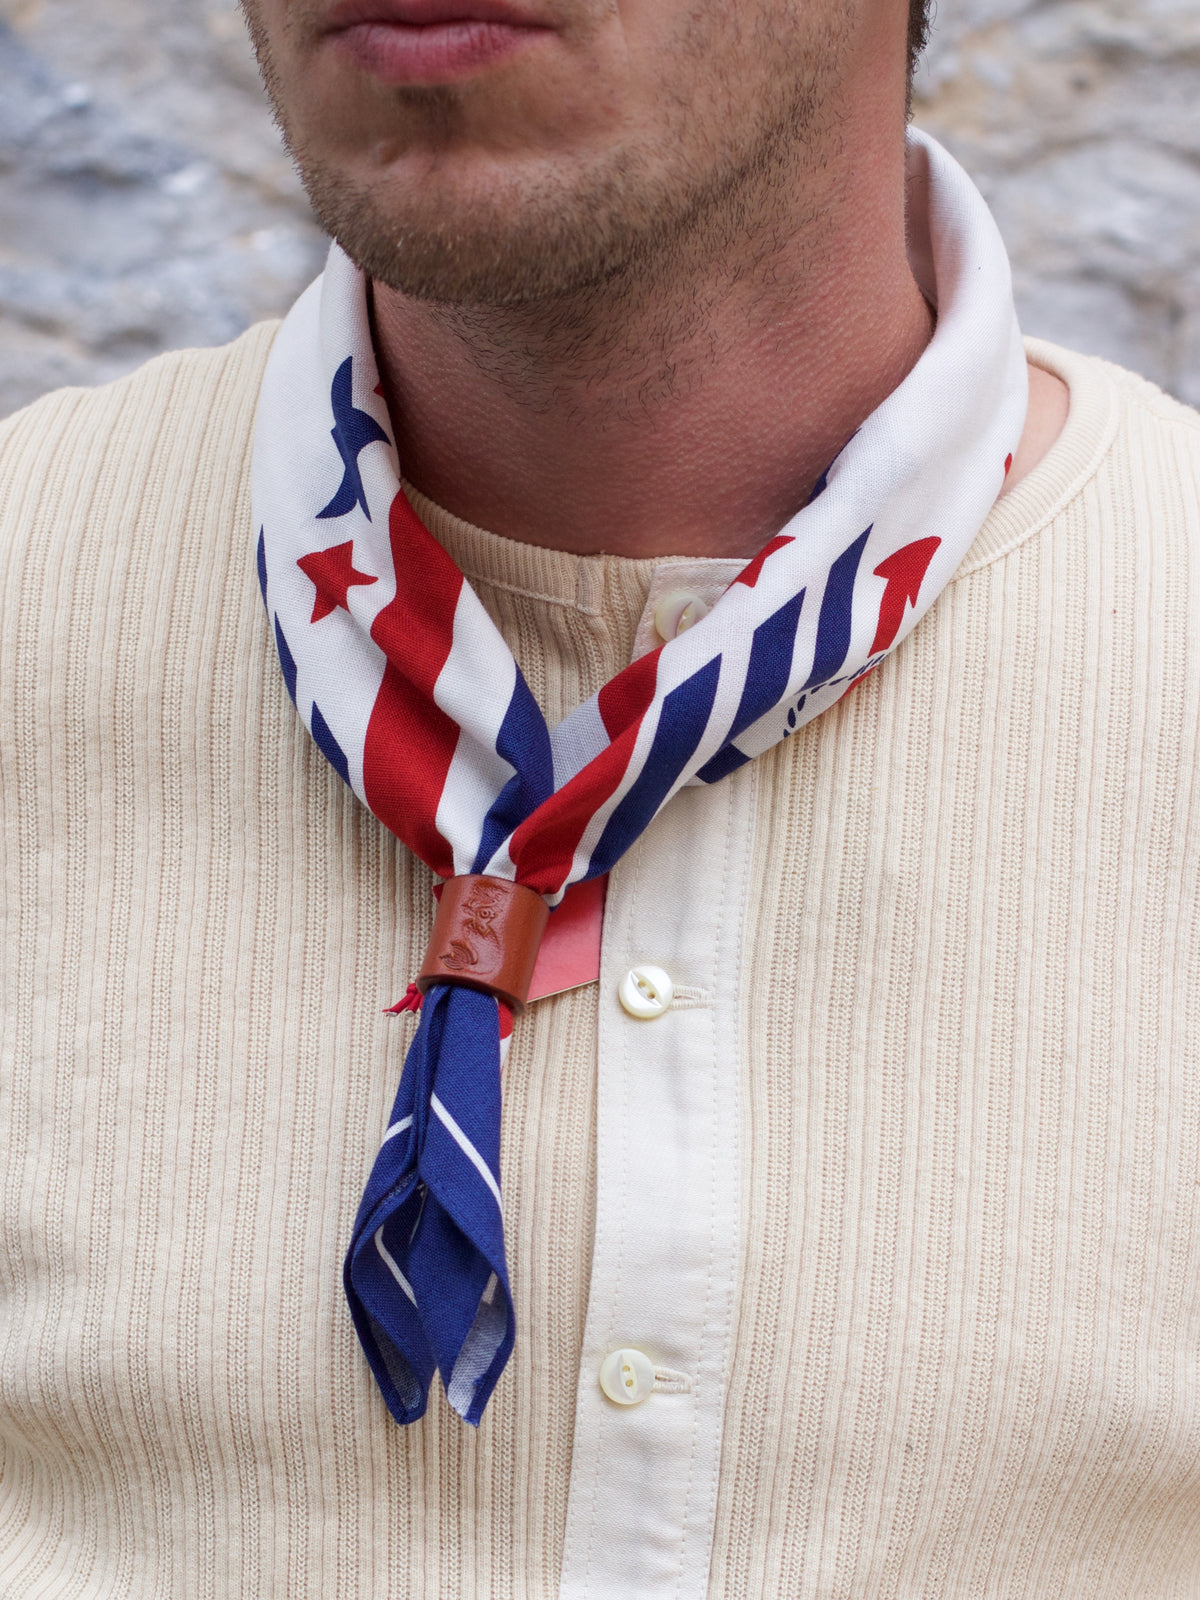 Real McCoy's MA12011 Military Anchor Bandana